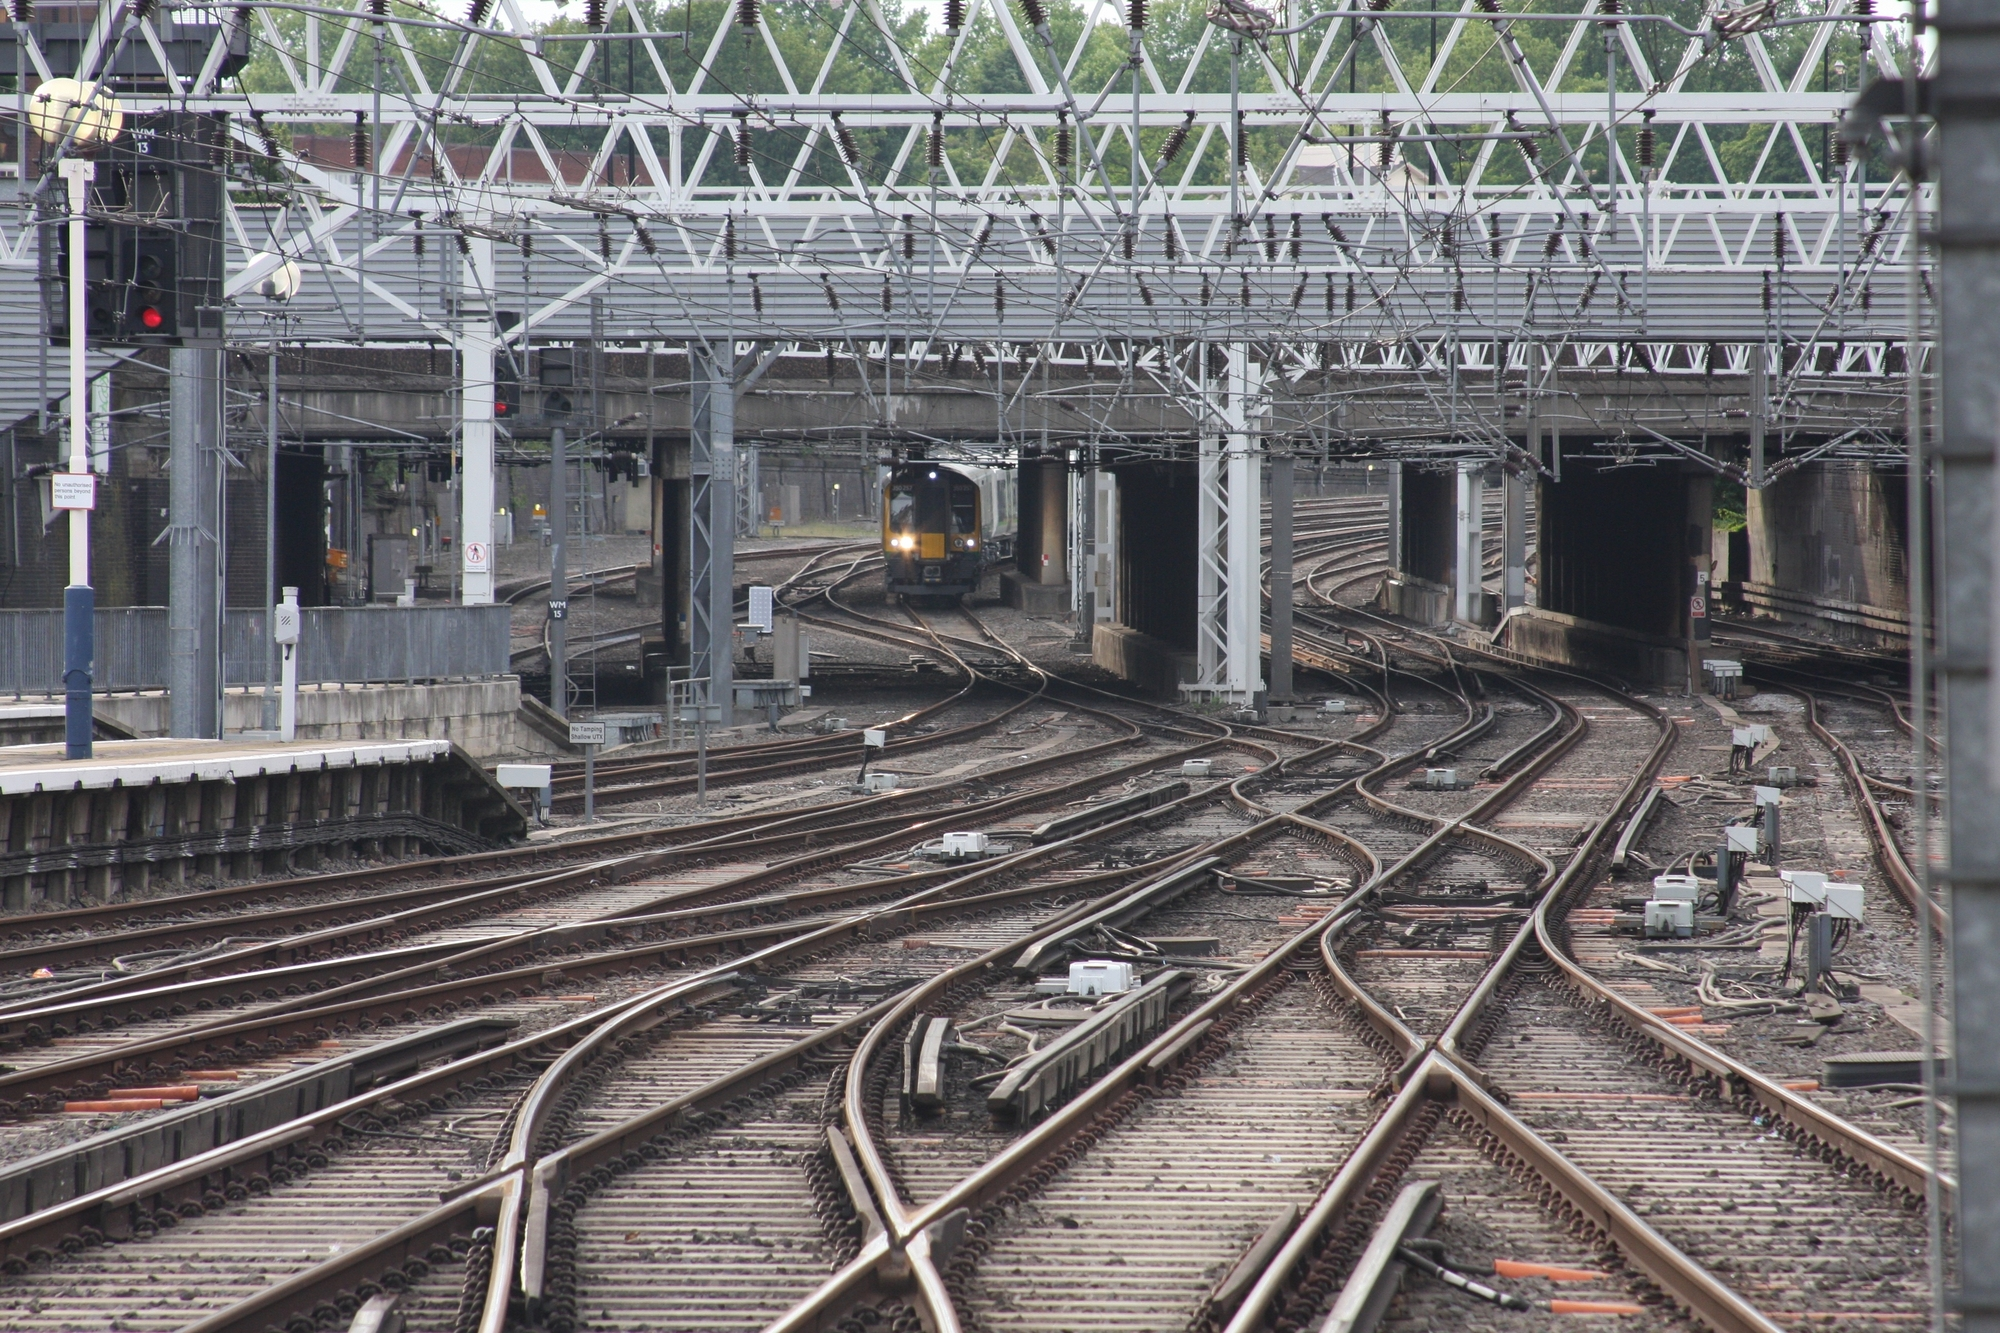 Design costs under fire from Network rail - New Civil Engineer